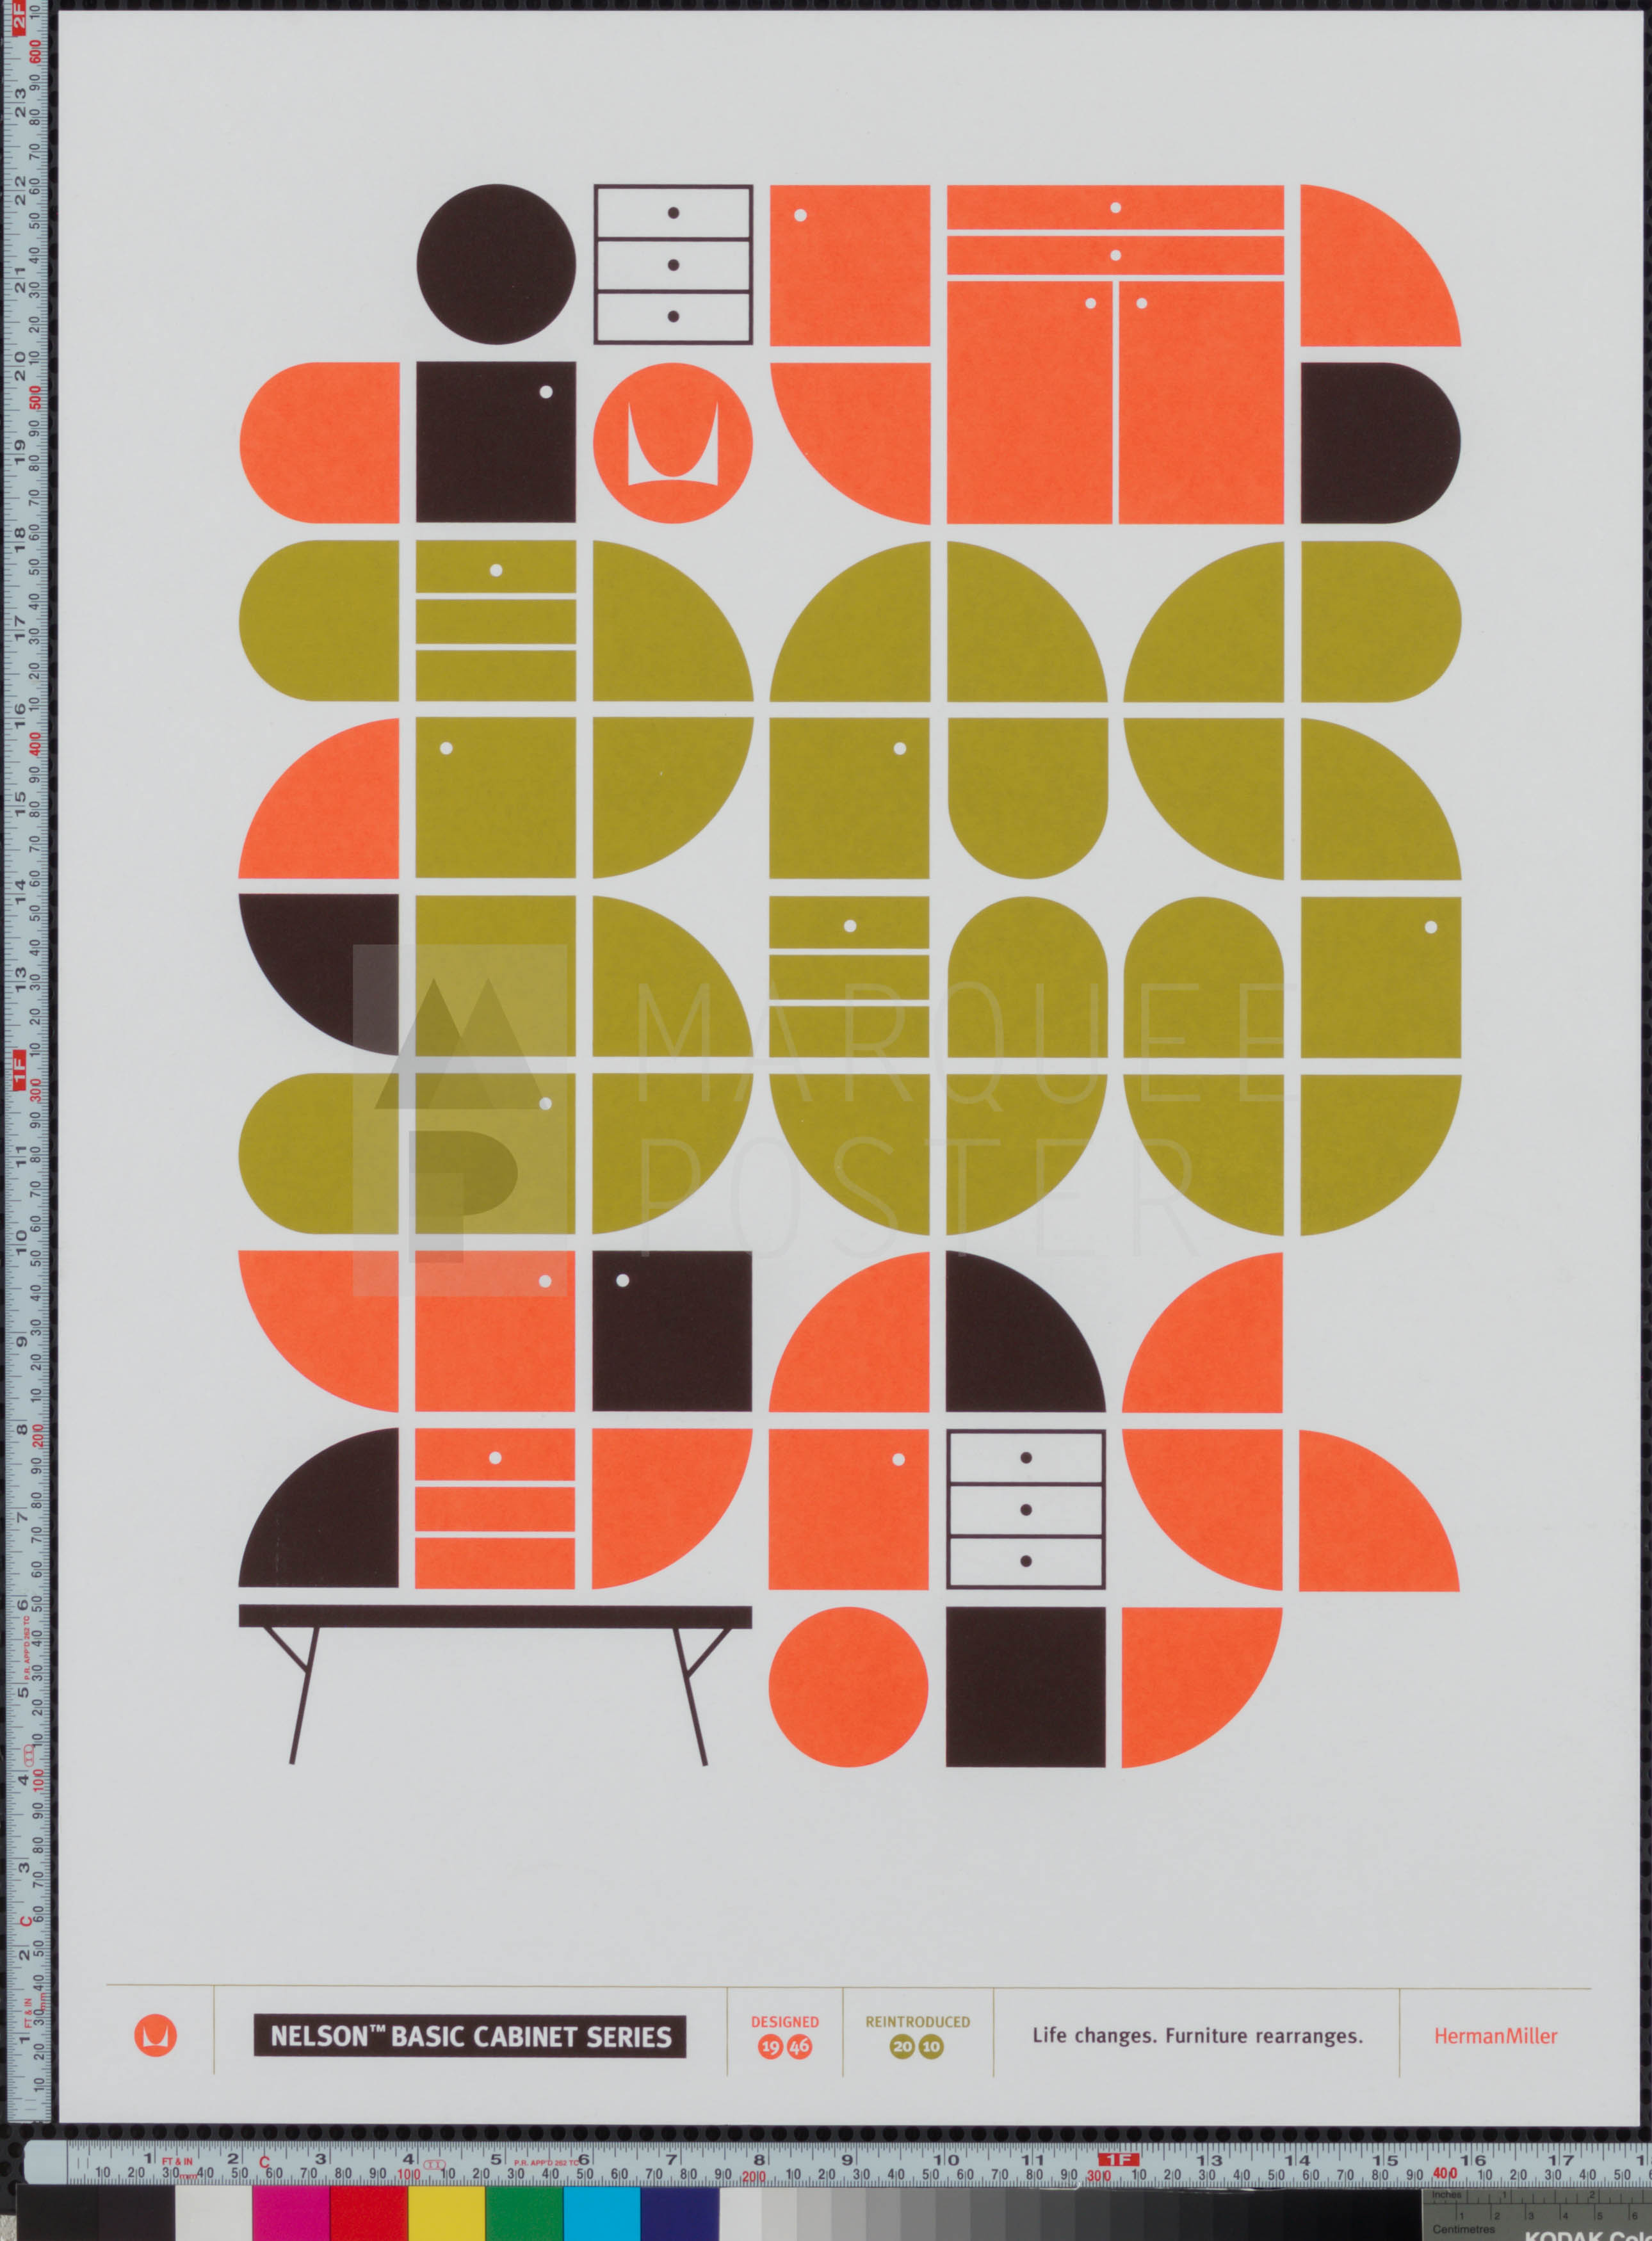 14-herman-miller-nelson-basic-cabinet-series-rounded-style-screenprint-us-arch-c-2010-02